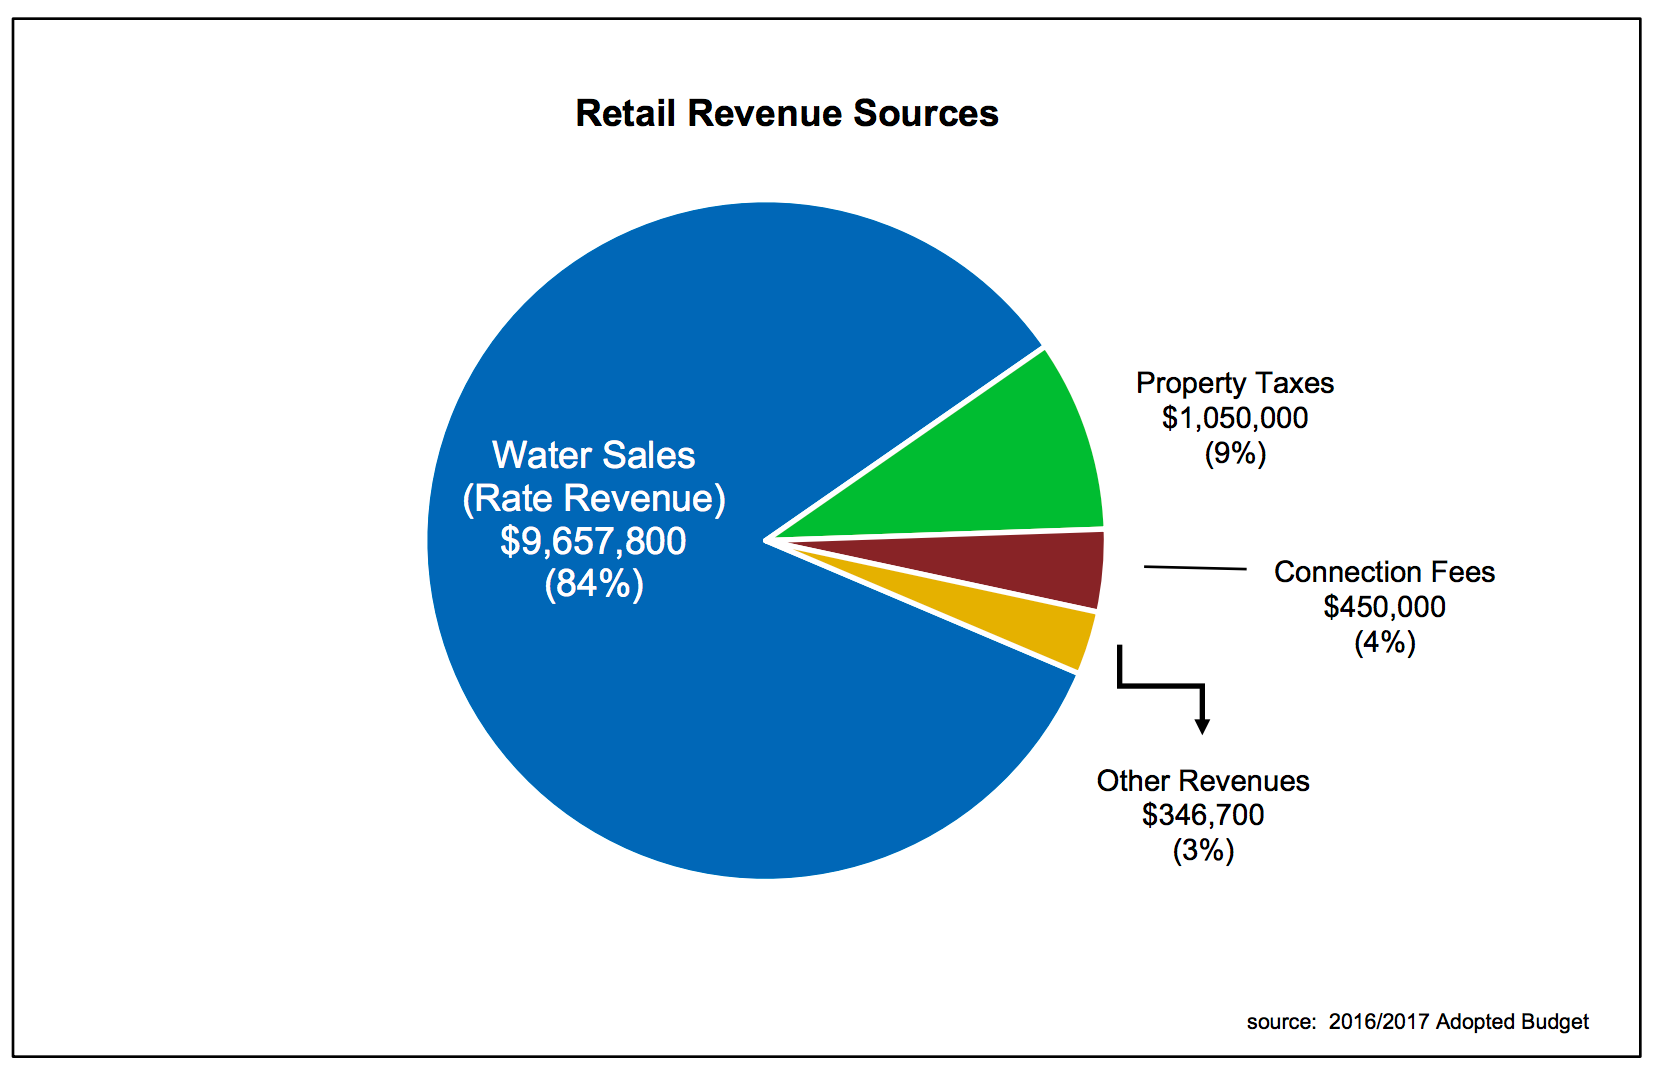 Pie Chart of Retail Revenue Sources